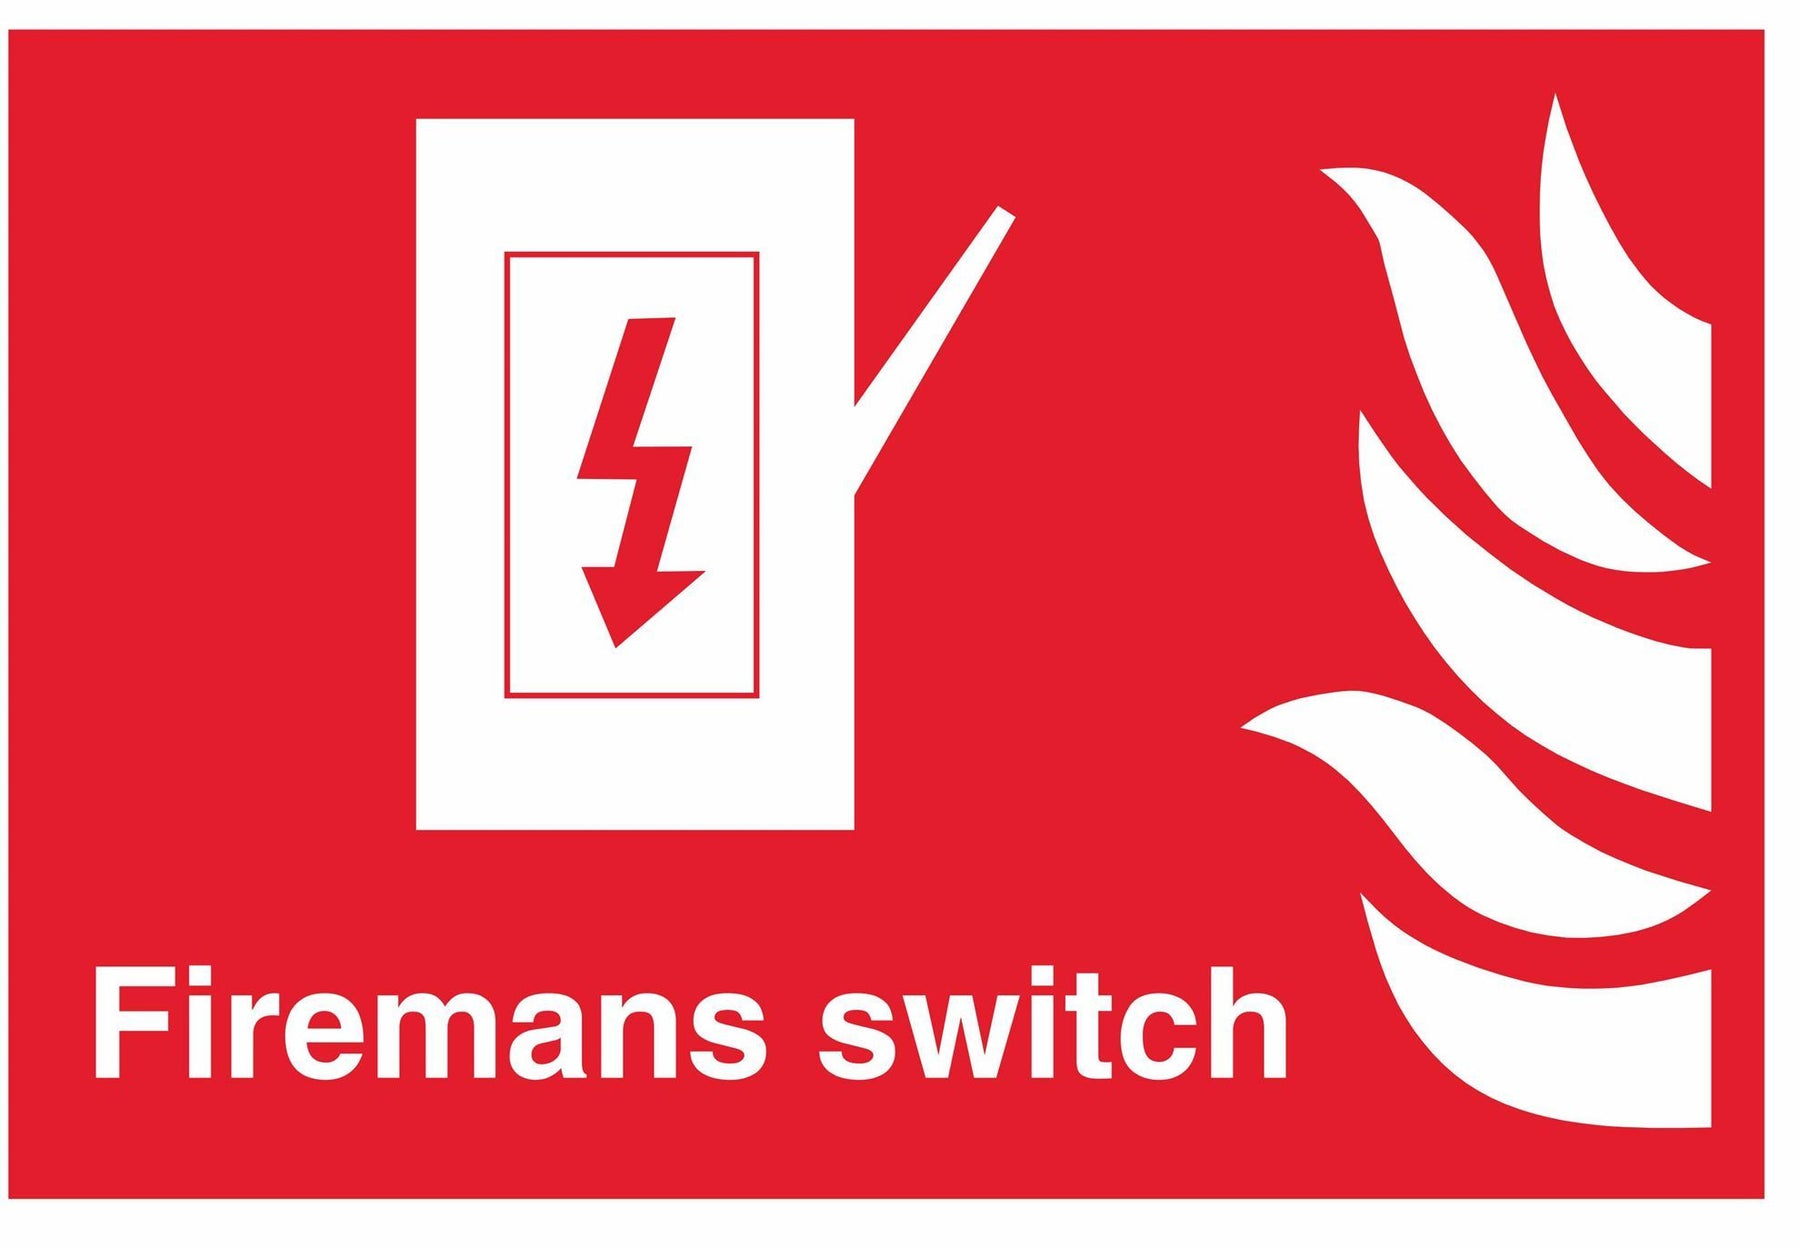 Firemans switch